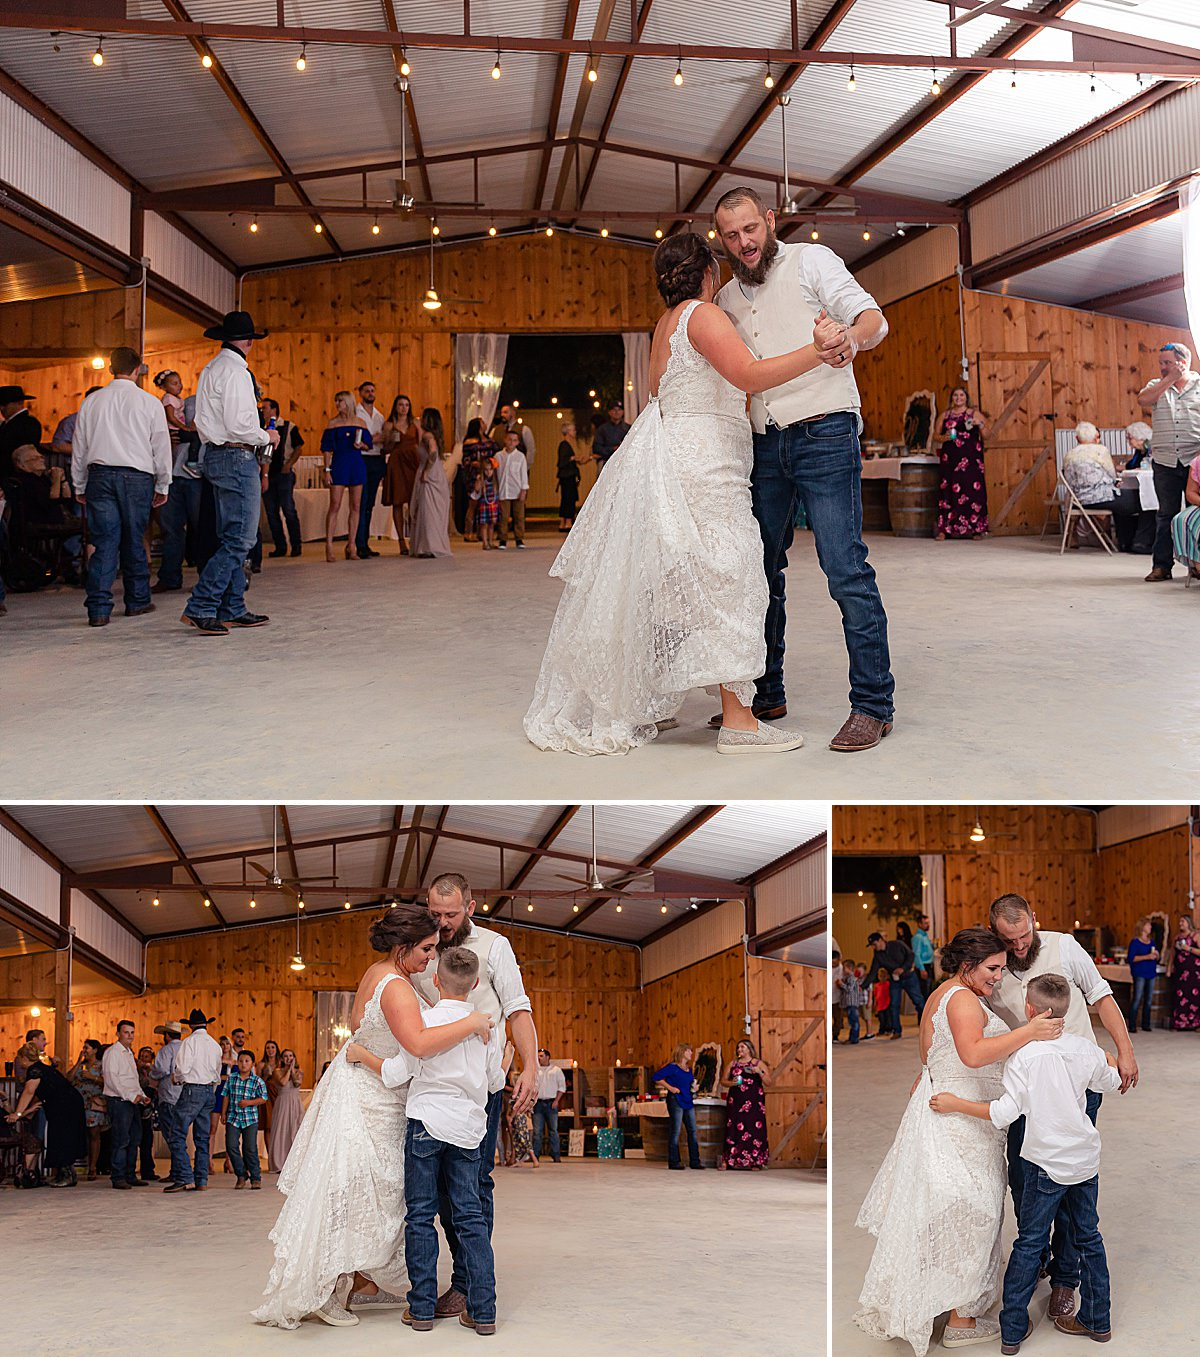 Rustic-Texas-Wedding-Hollow-Creek-Ranch-Carly-Barton-Photography_0057.jpg